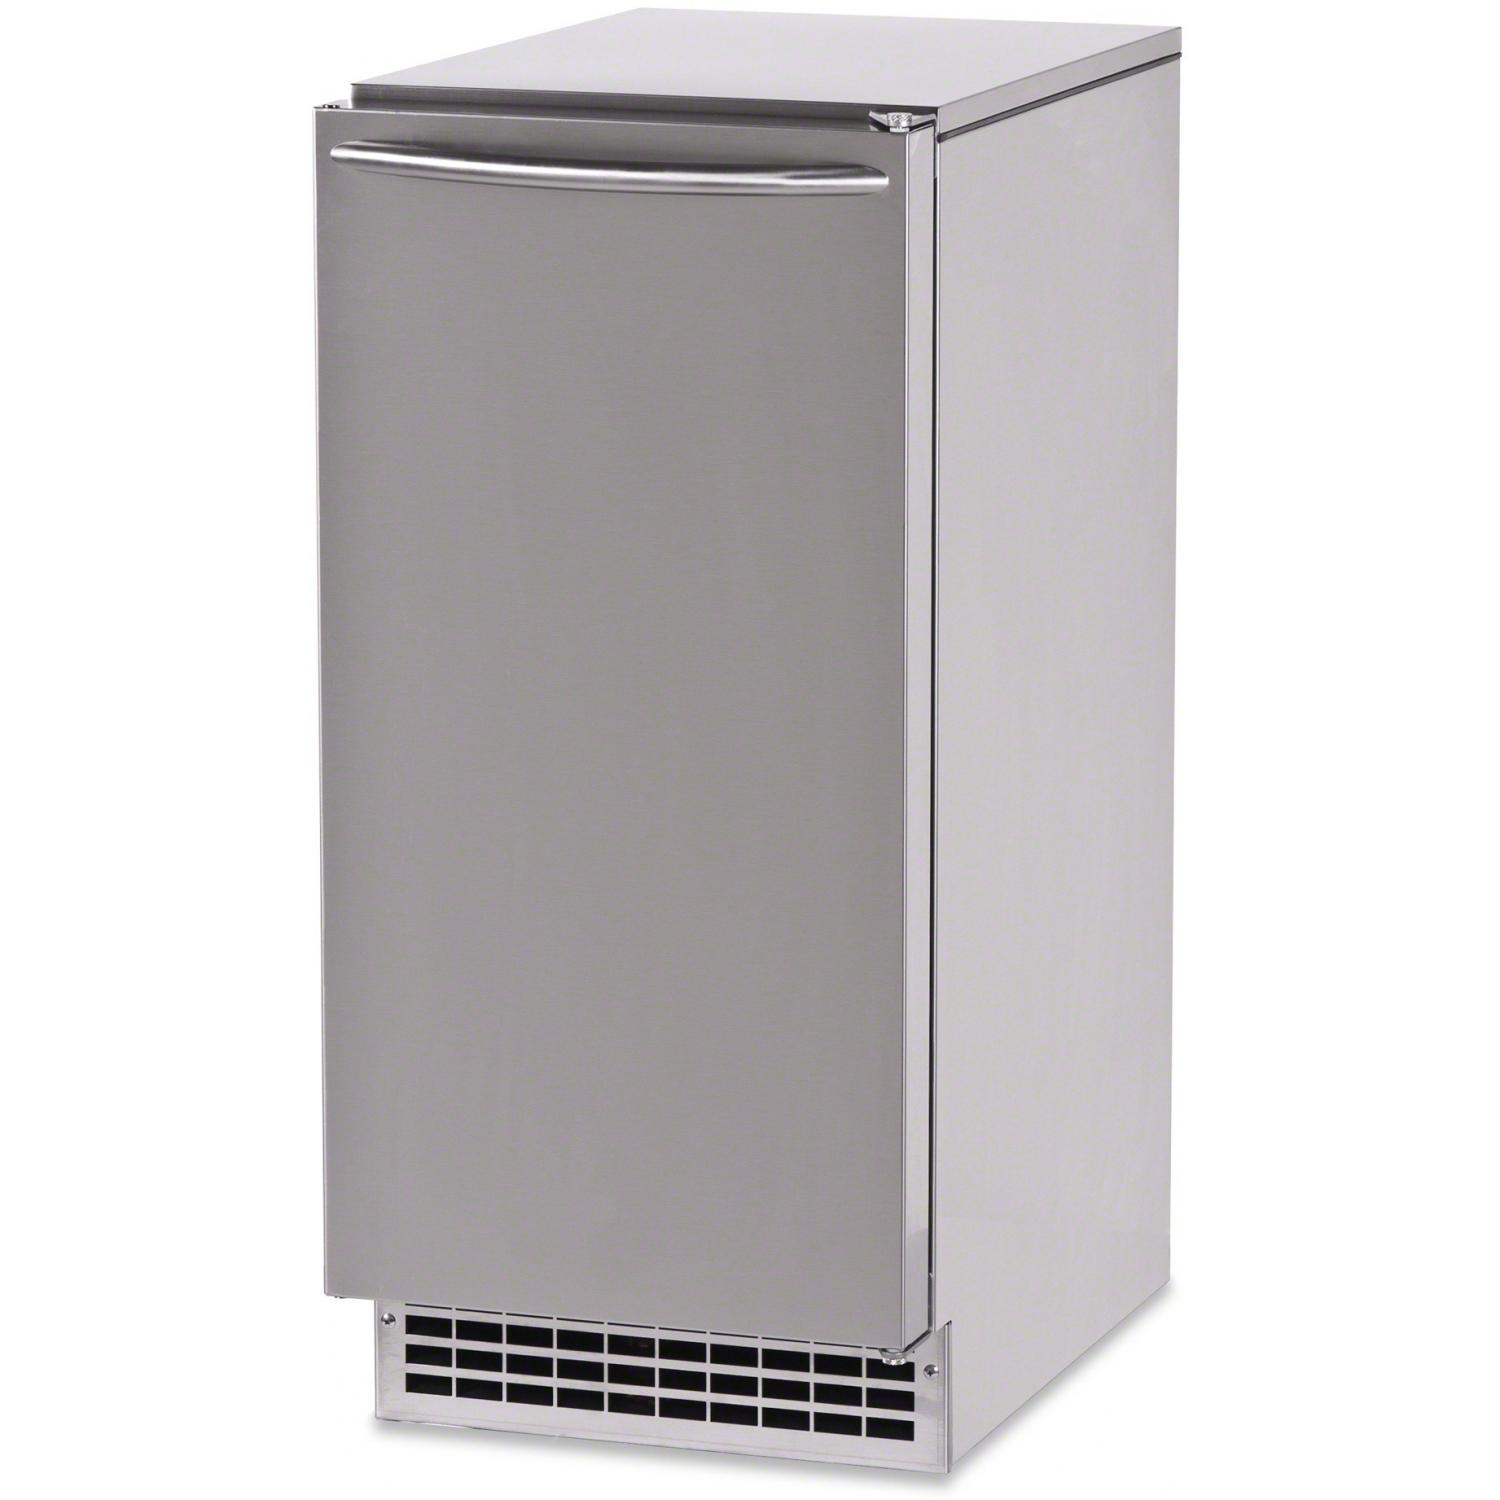 Ice-O-Matic 85 Lb. Outdoor Ice Maker With Gravity Drain - Stainless Steel - GEMU090 2886108